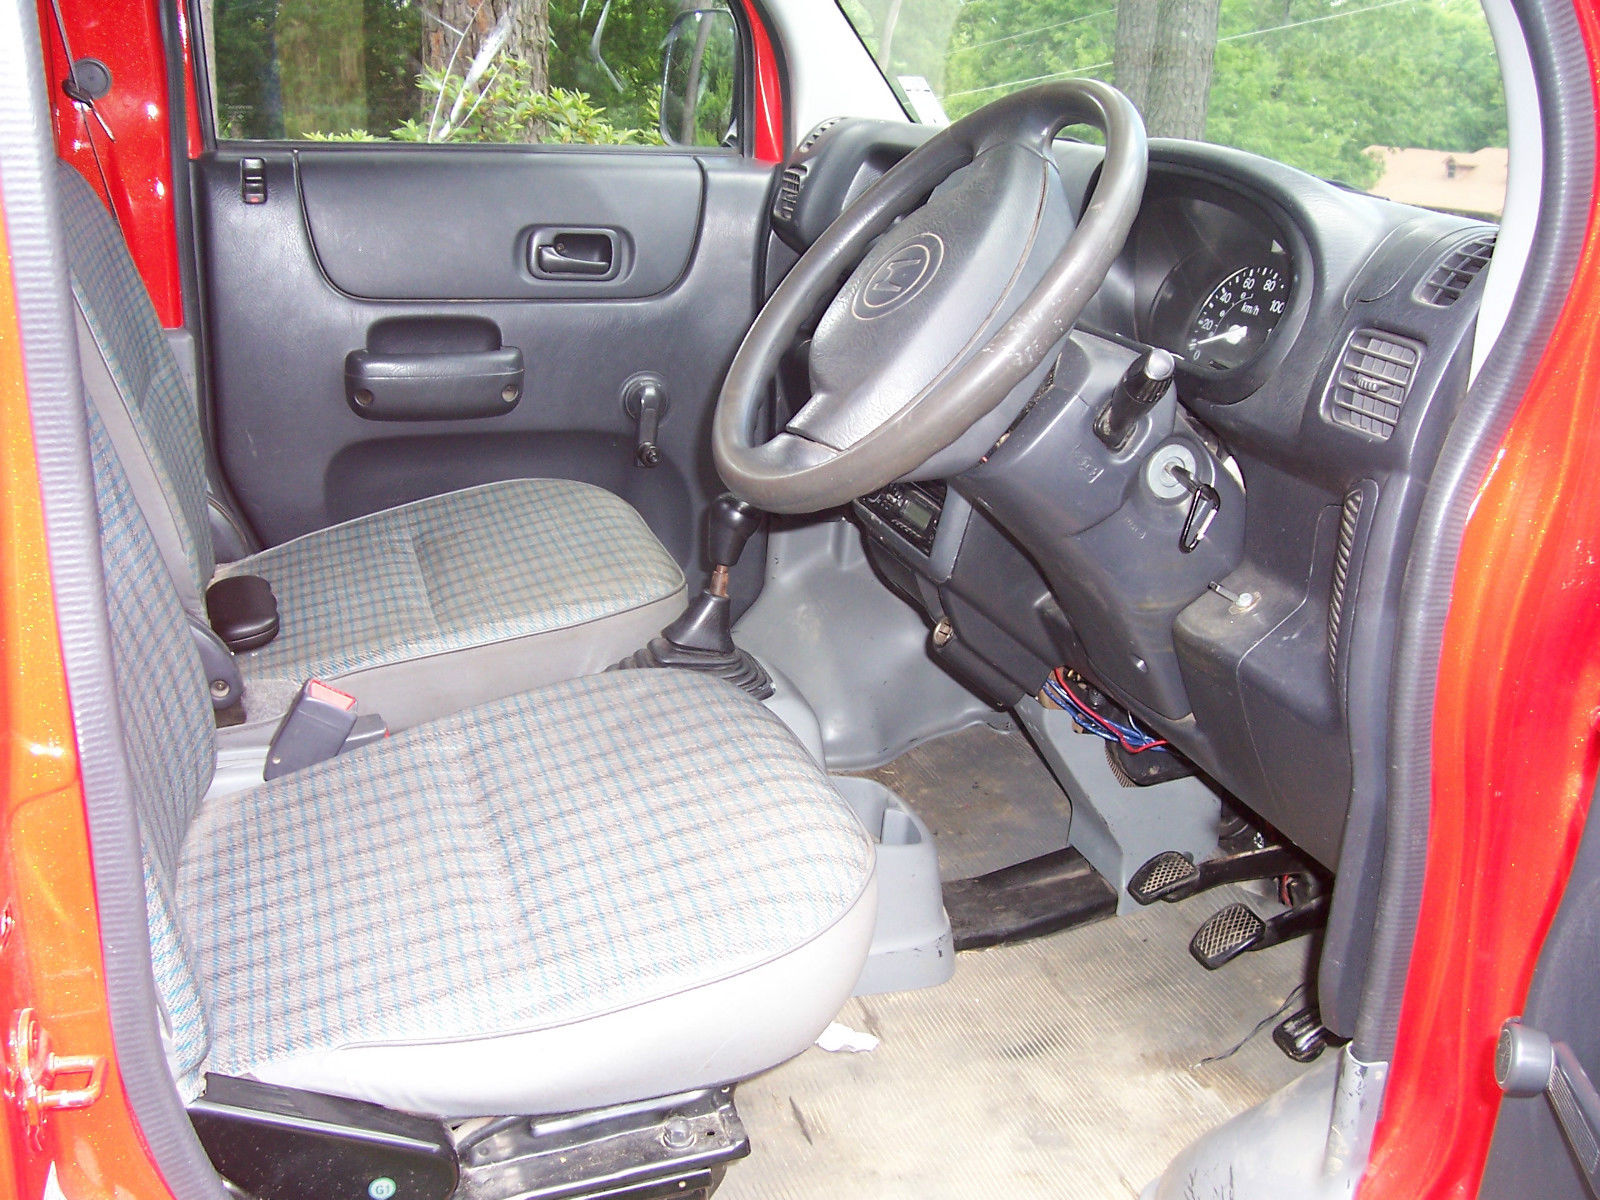 Daily Turismo: Little Red: 2001 Honda Acty Mini Truck